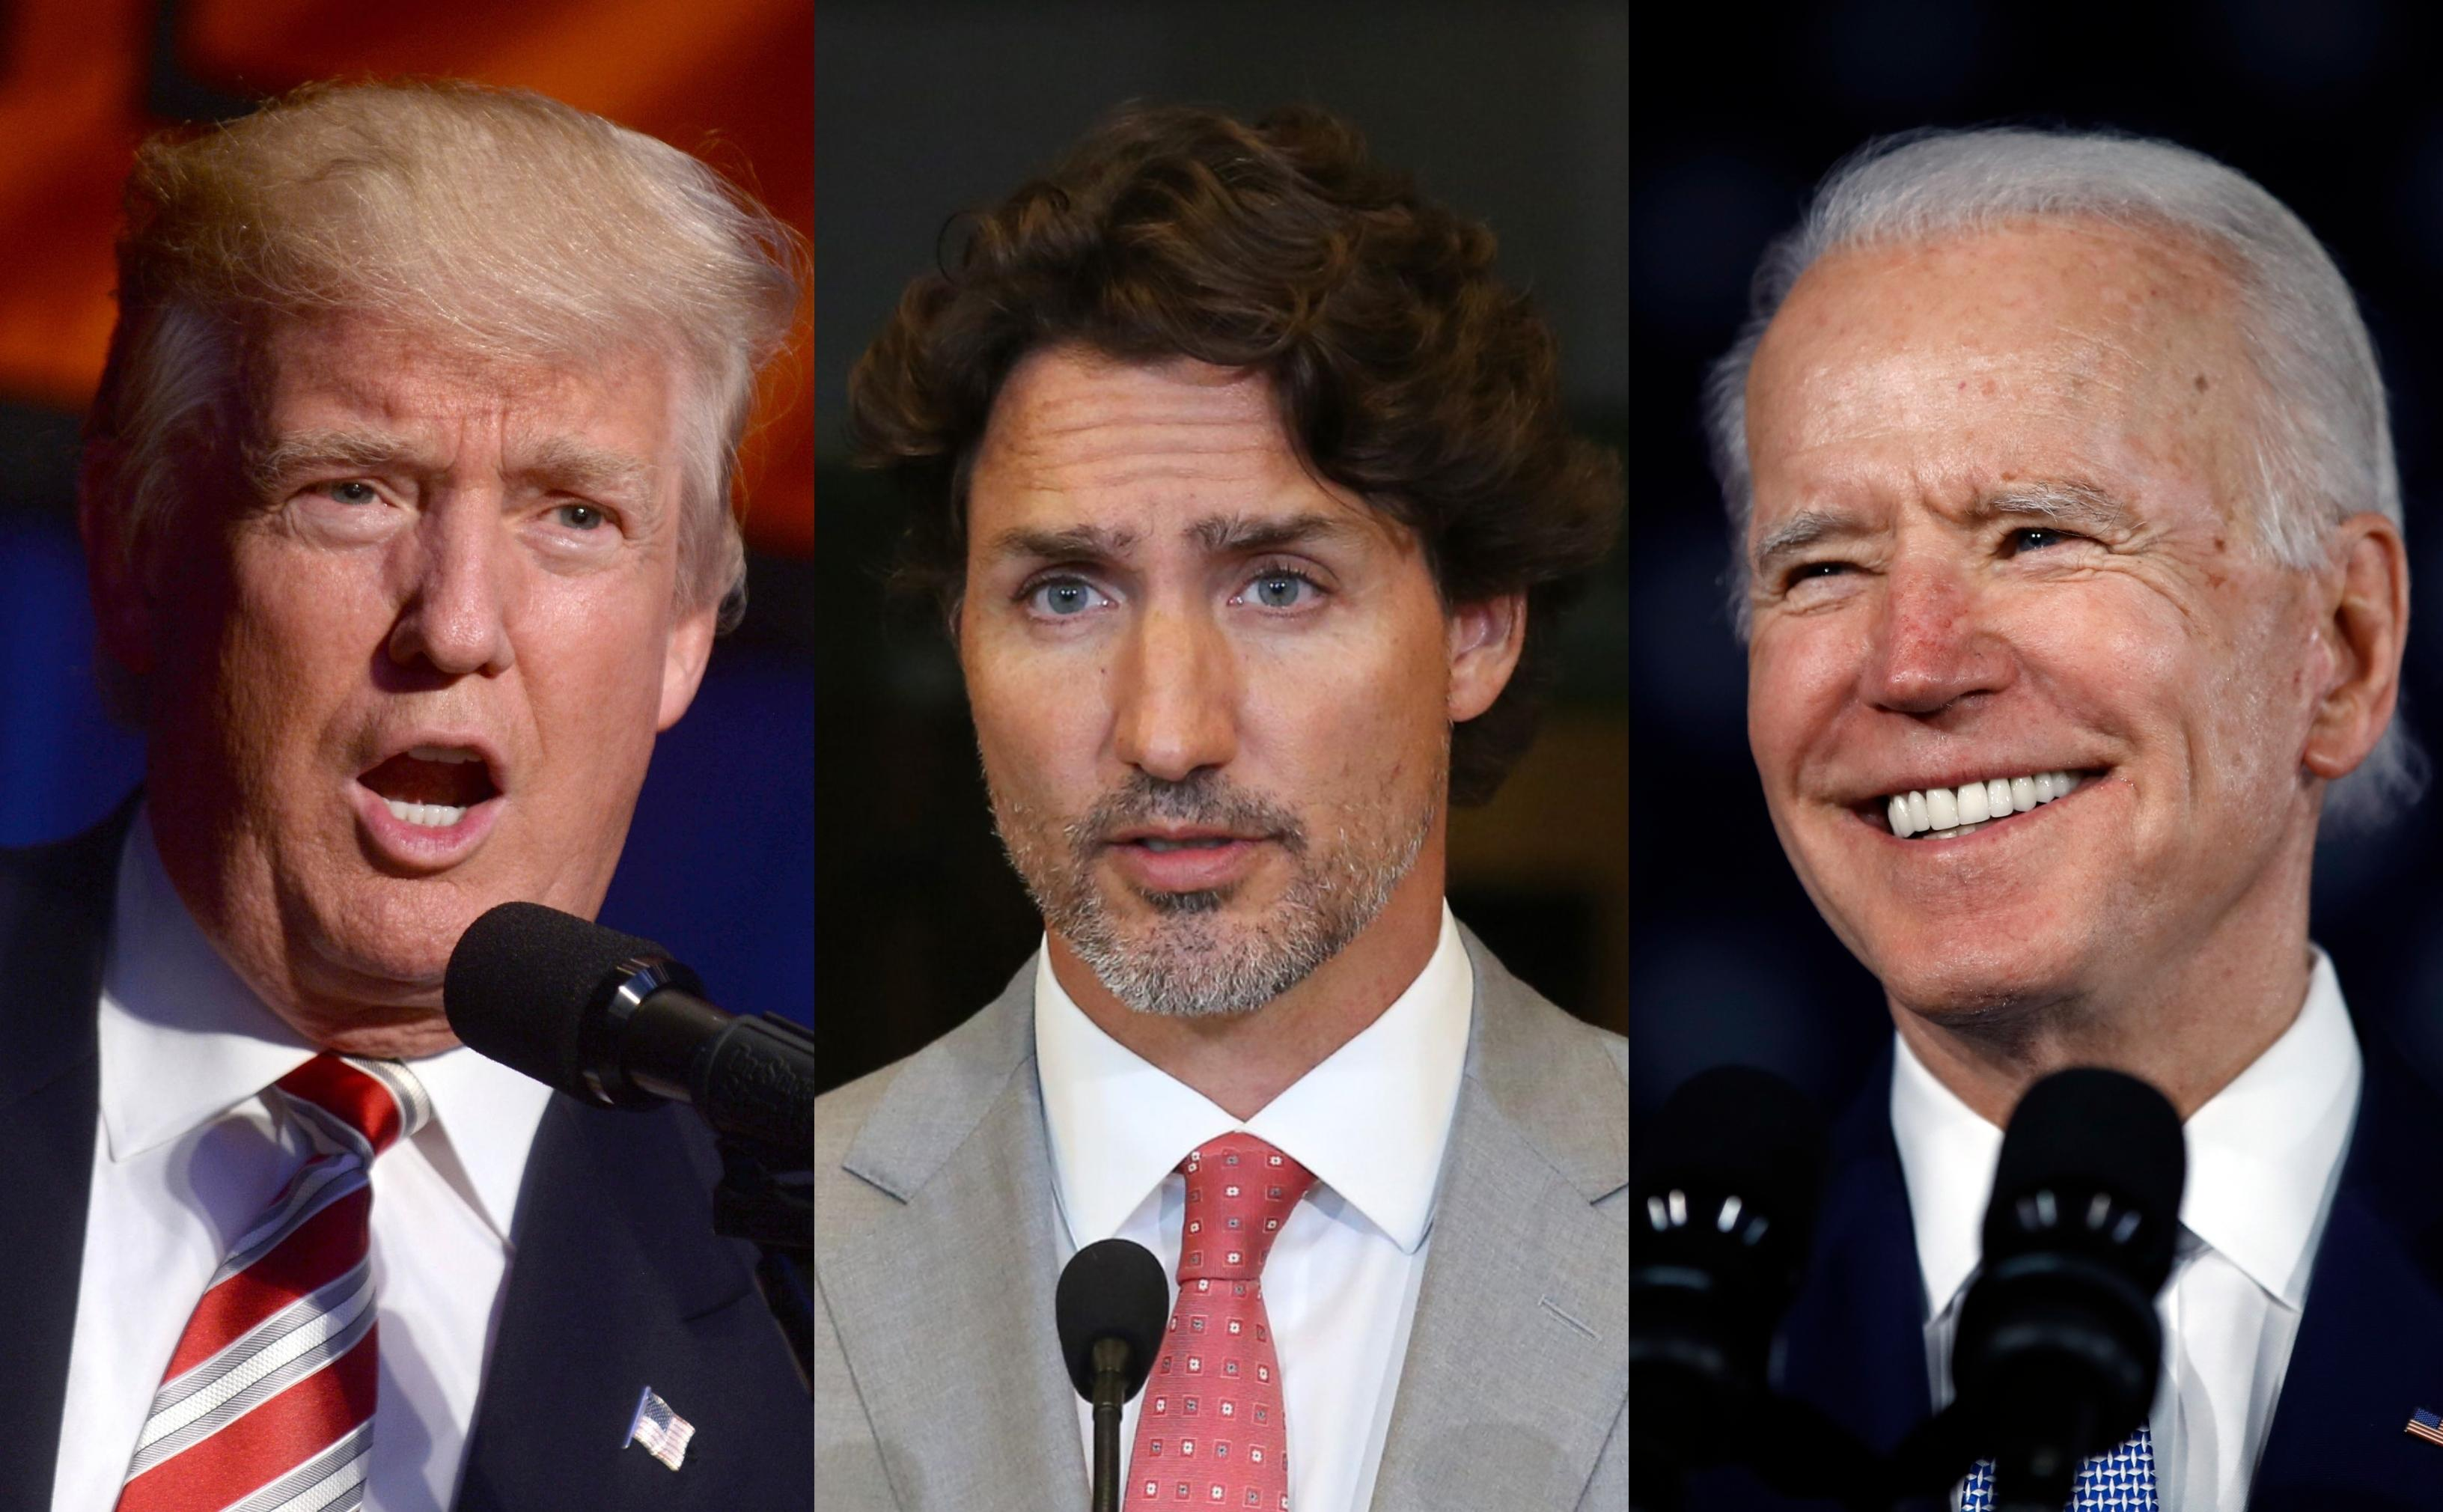 A U.S. election for Canada: Trump victory has experts 'fearing the worst', Biden more 'in line' with Canadian values